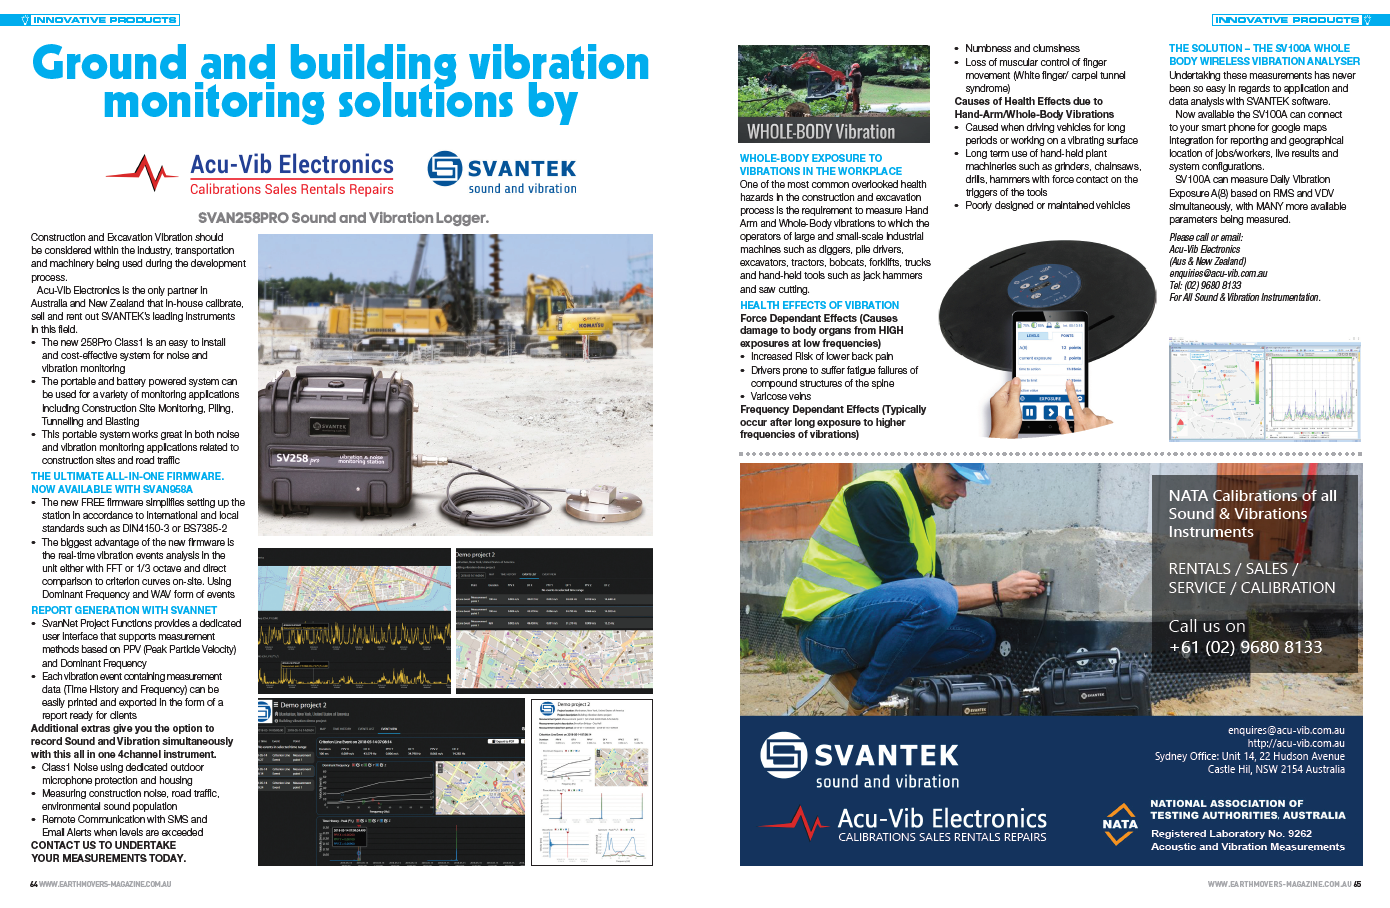 Ground and building vibration monitoring solutions article